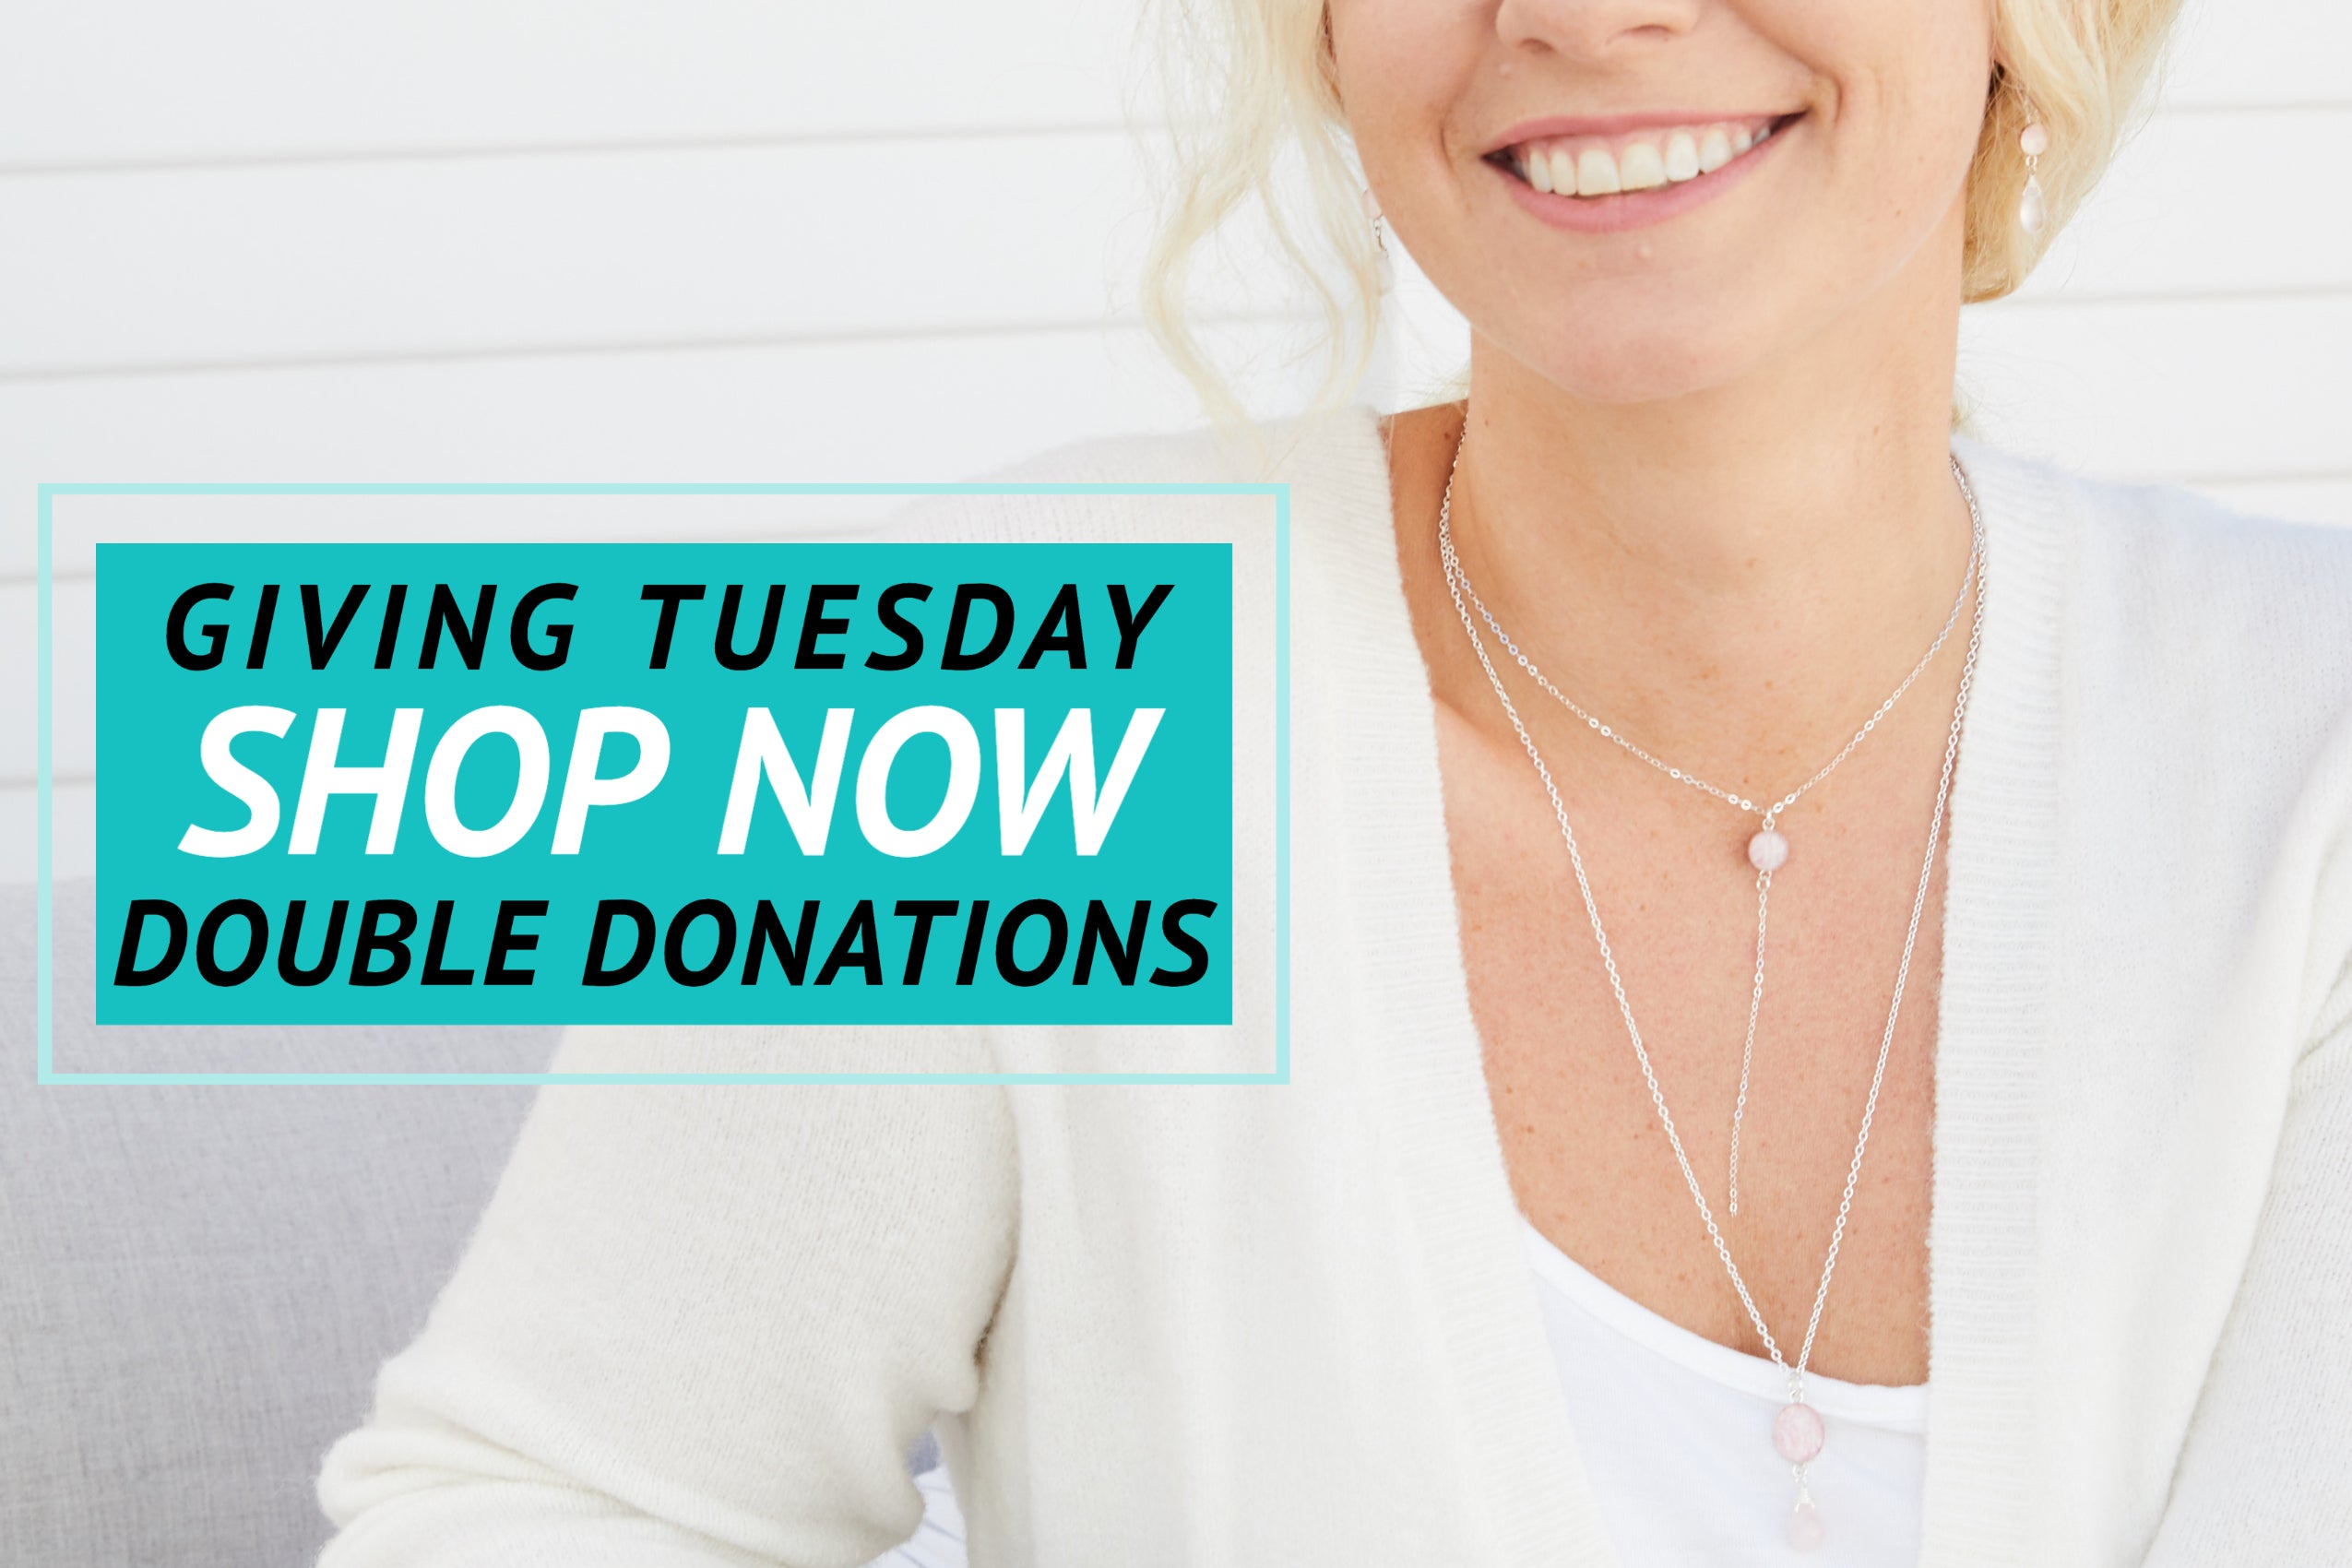 Donations doubled on giving Tuesday